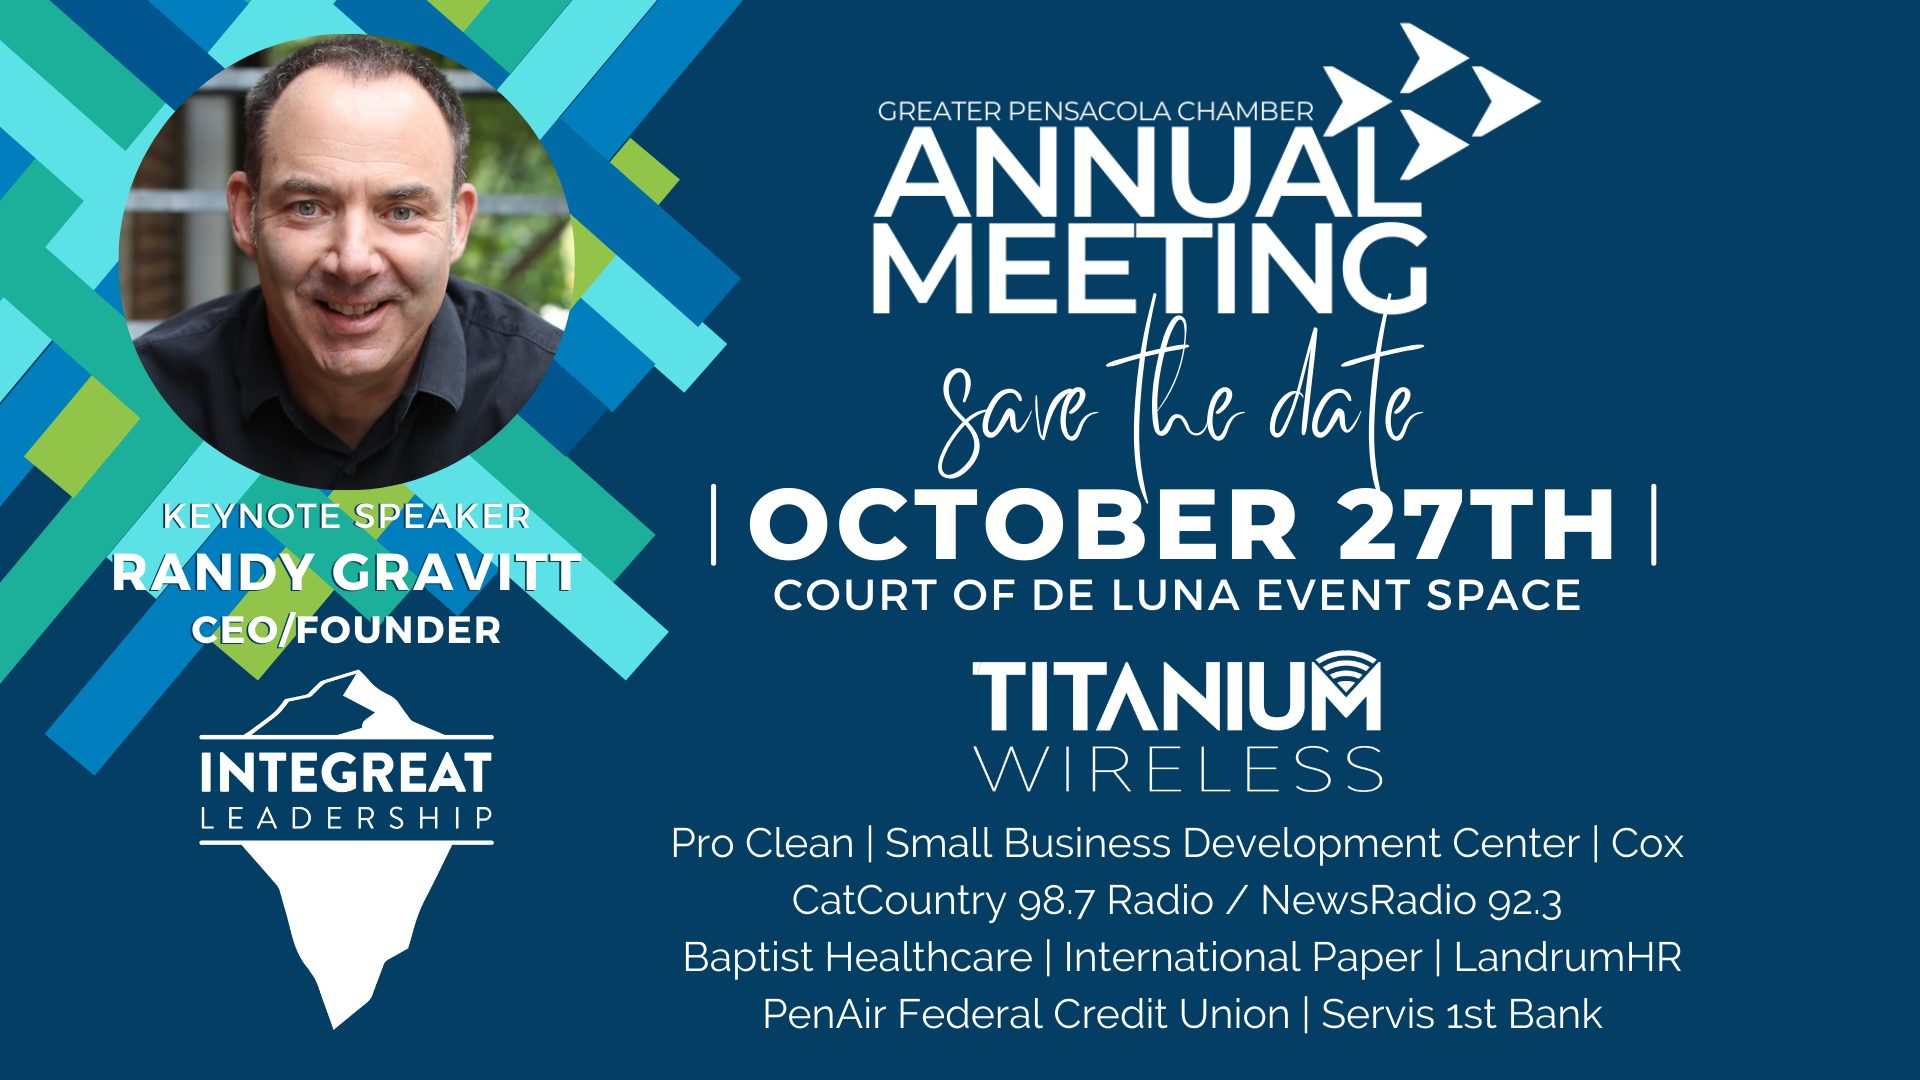 Annual meeting 2021 details